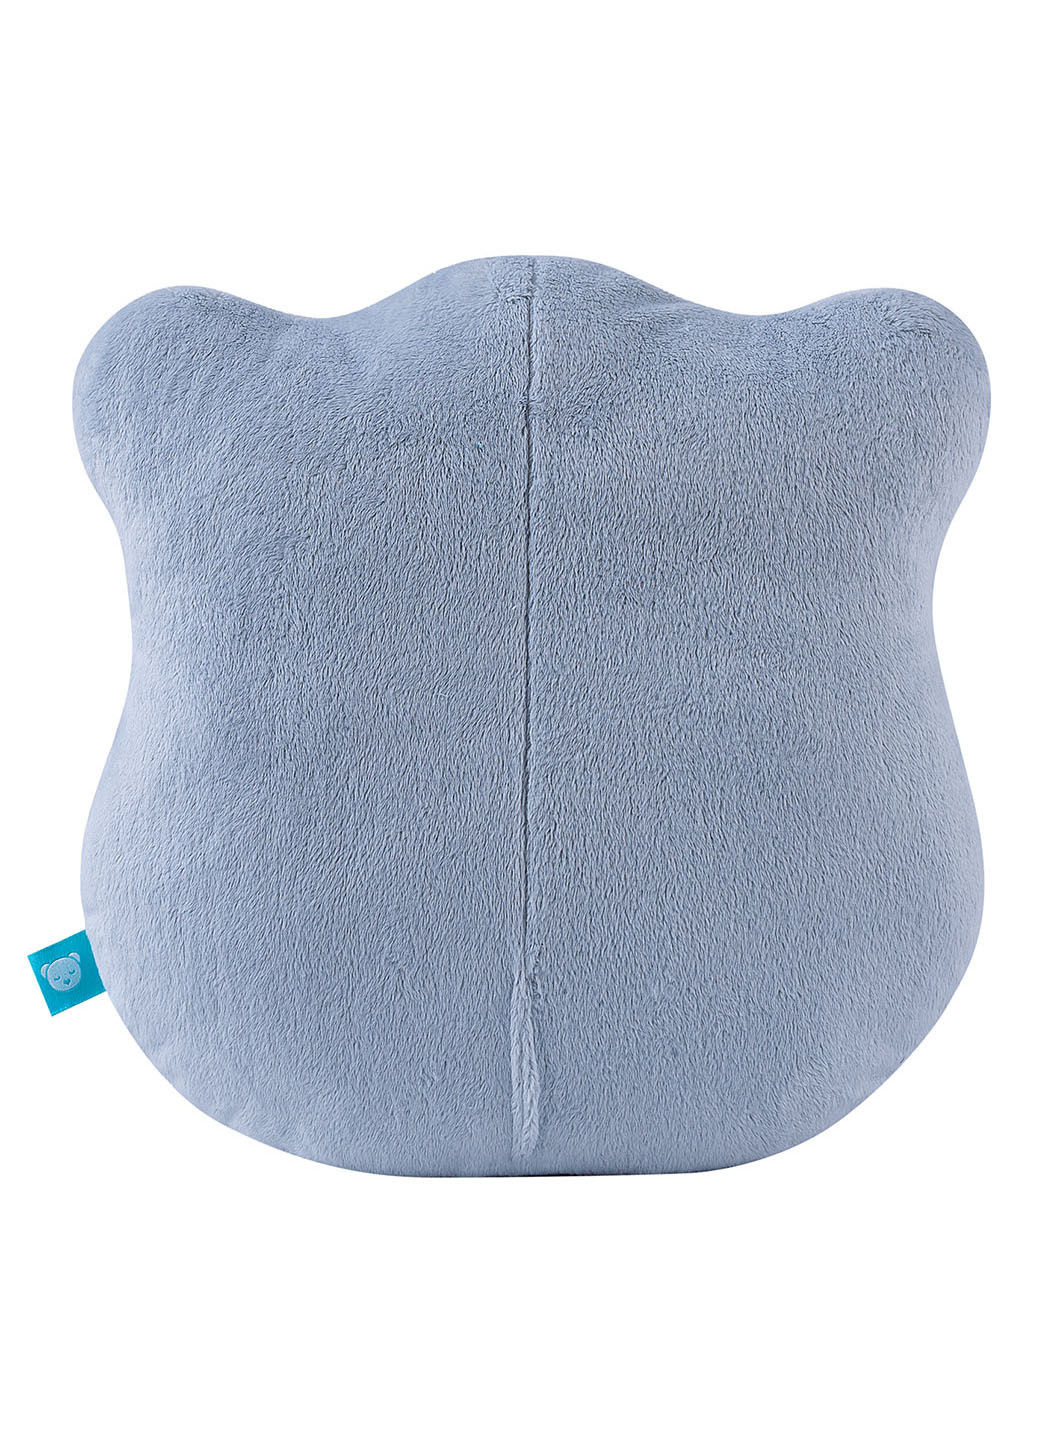 myHummy Coussin - gris clair